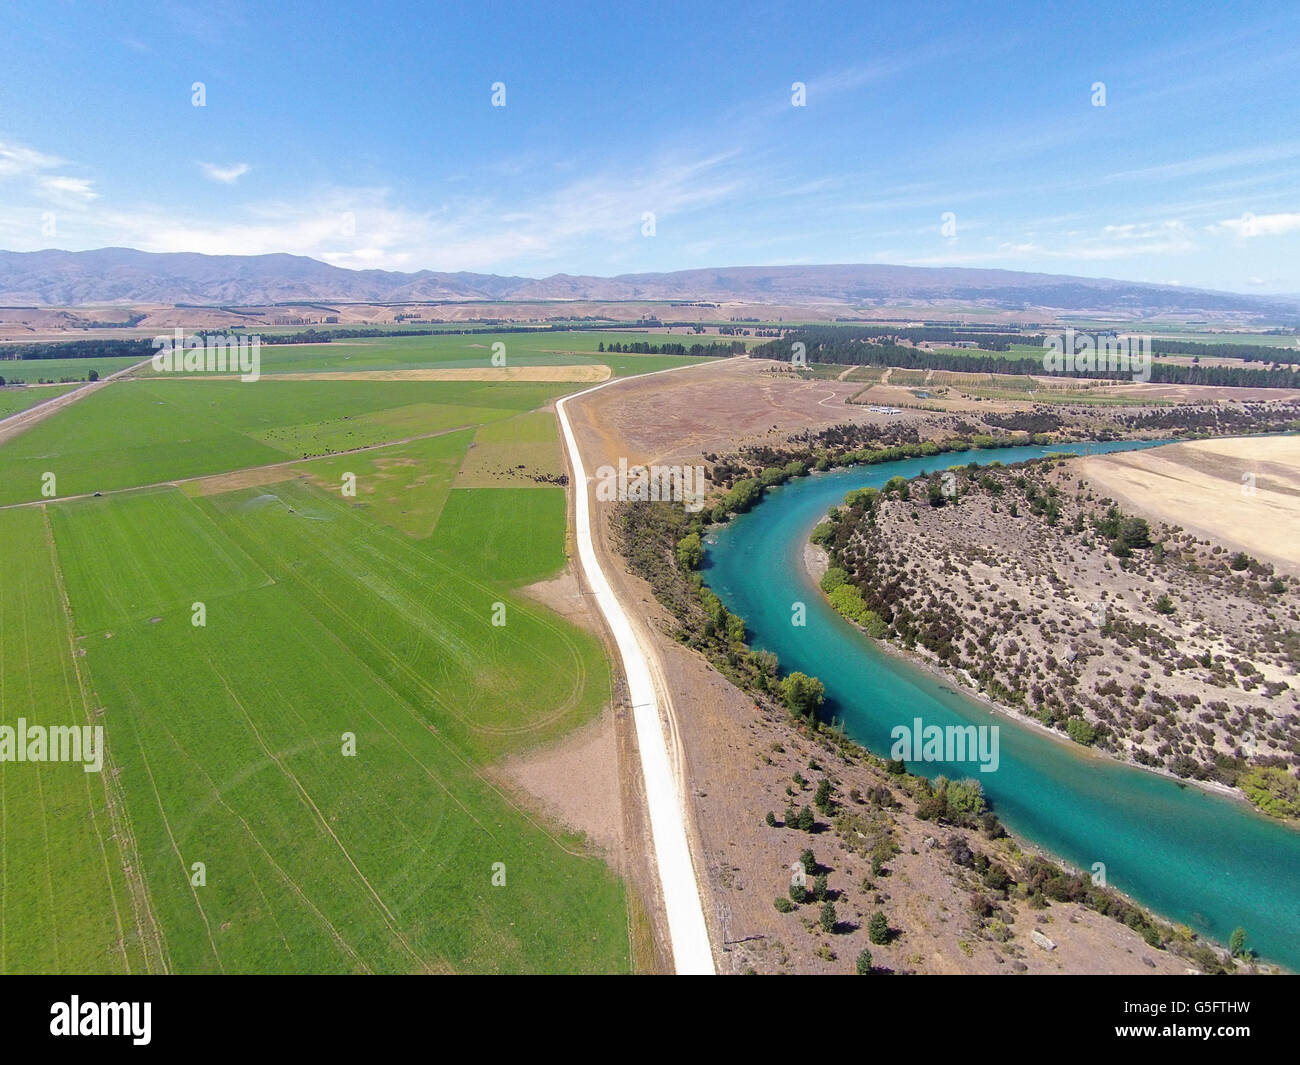 Farmland, Maori Point Road, and Clutha River, Central Otago, South Island, New Zealand - drone aerial - Stock Image